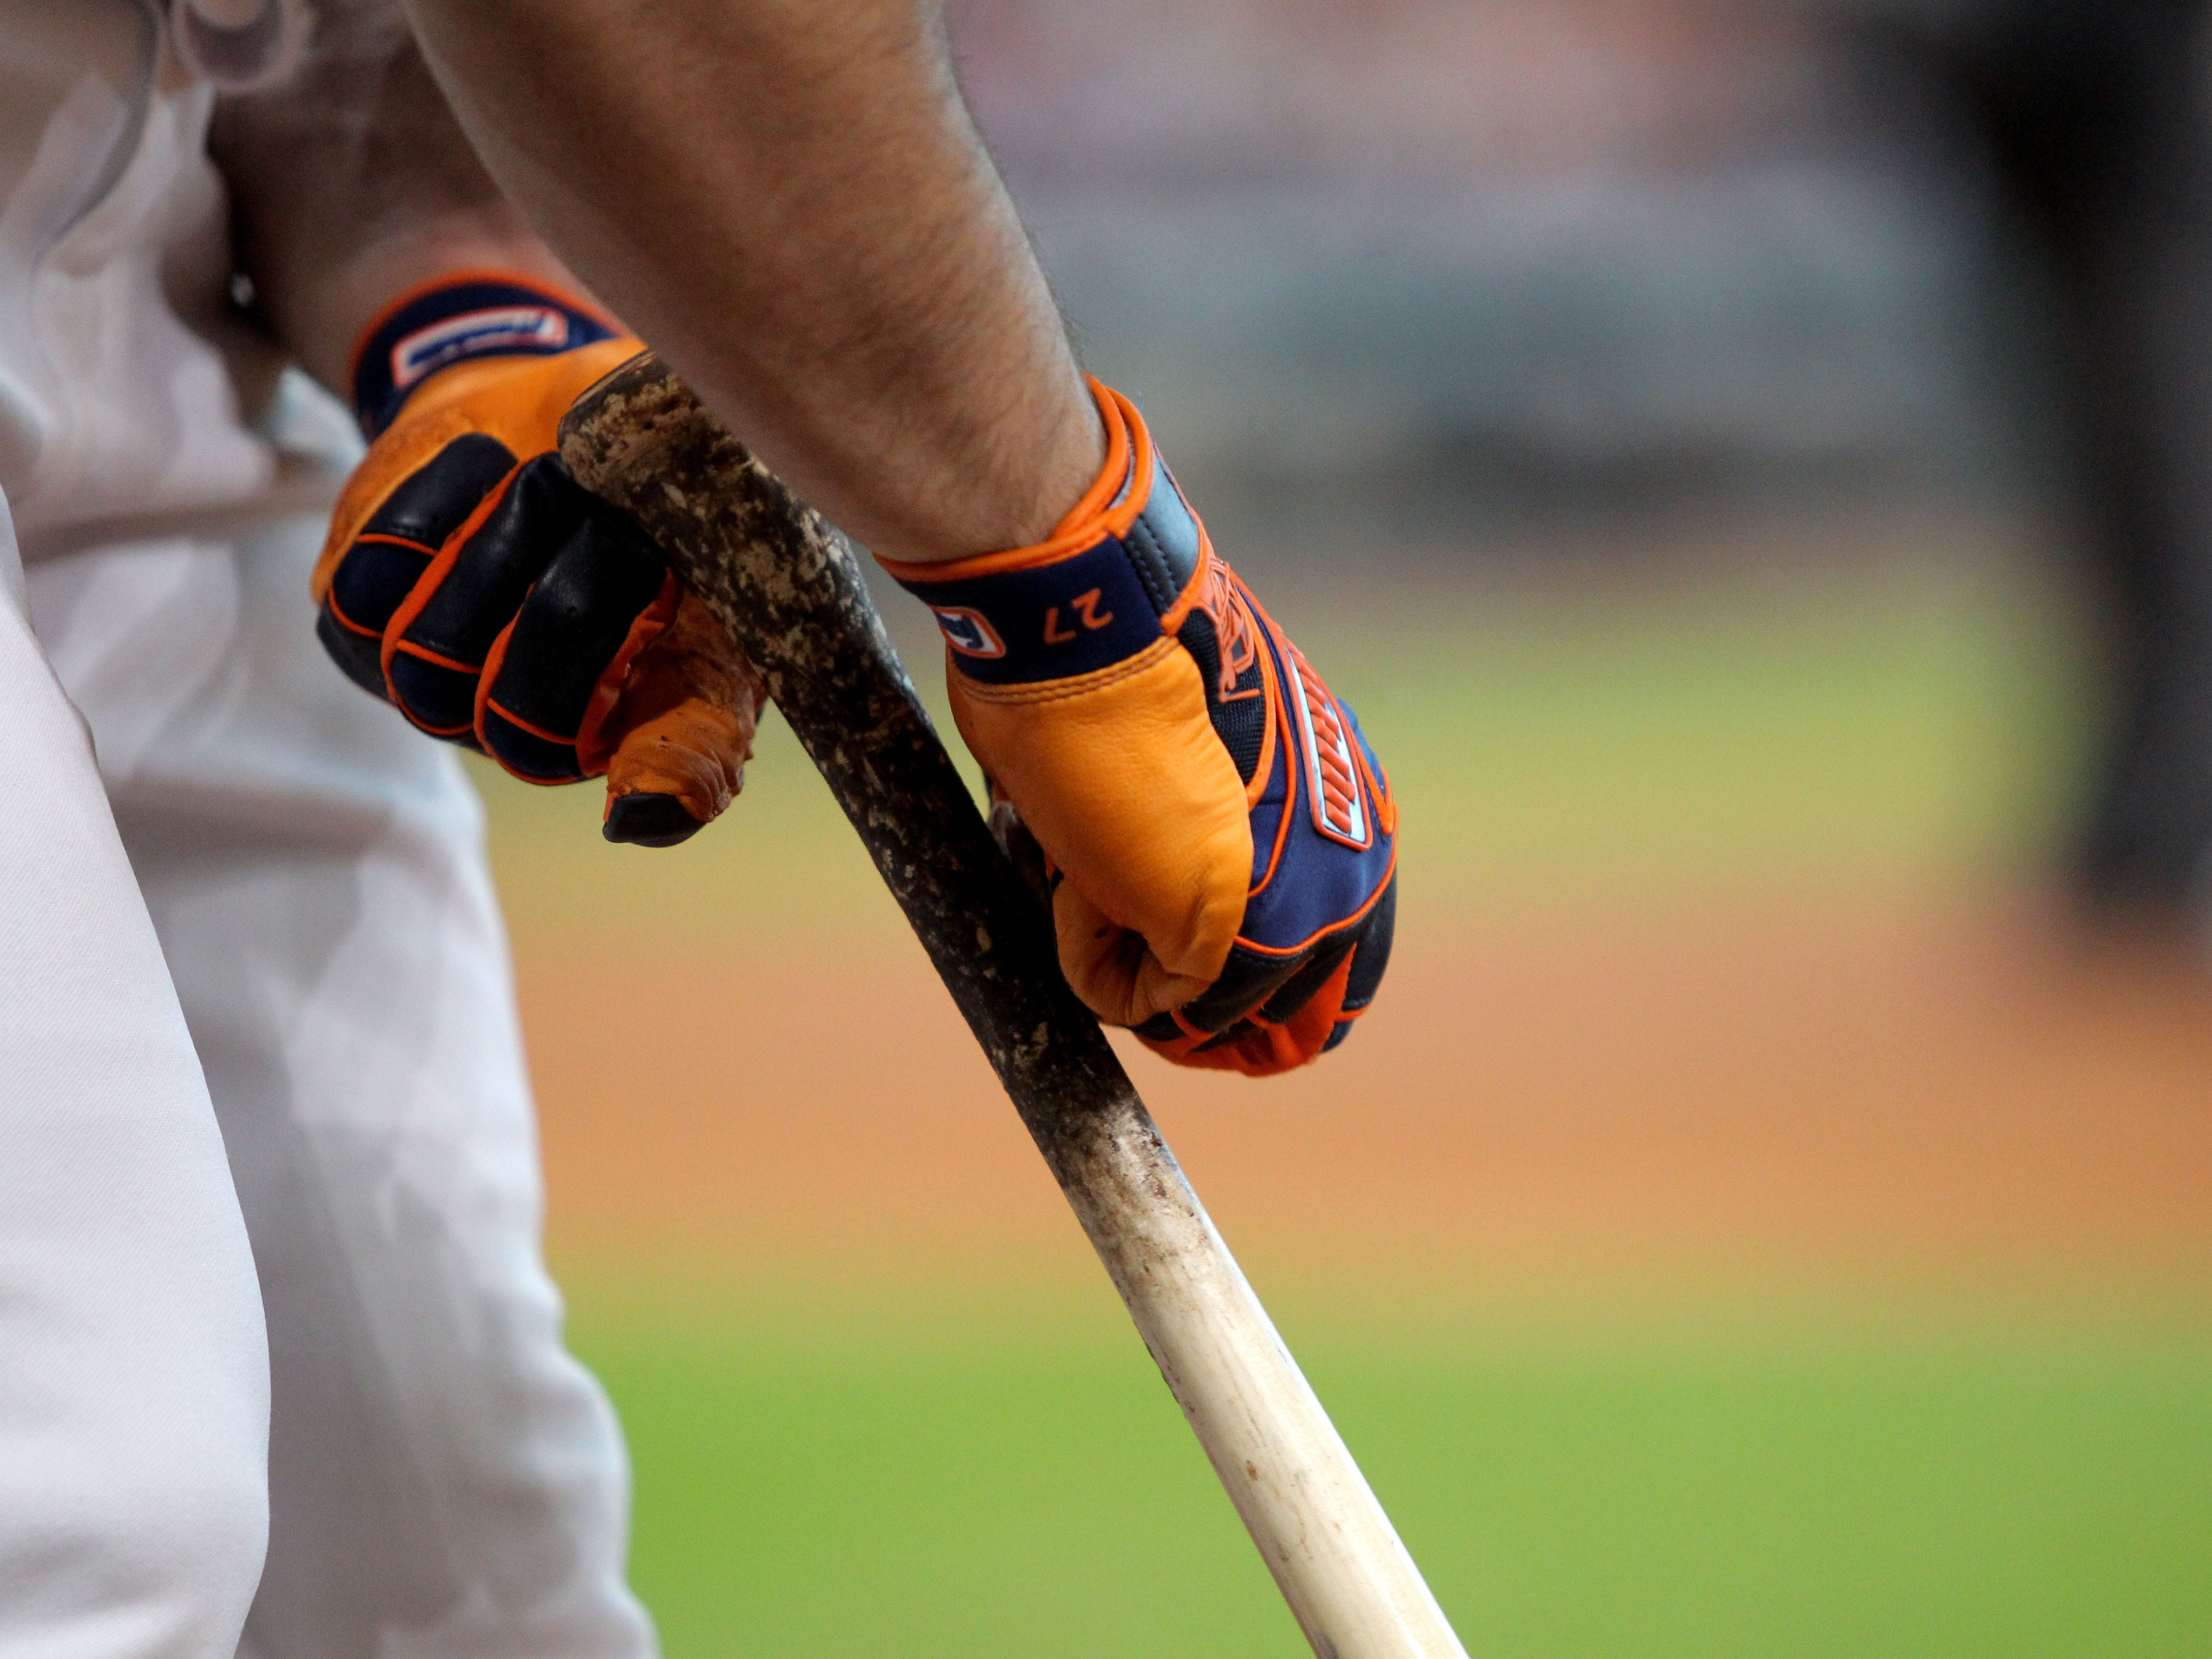 Sep 15, 2018; Houston, TX, USA; Houston Astros second baseman Jose Altuve (27) tends to his bat in the on-deck circle during the first inning against the Arizona Diamondbacks at Minute Maid Park. Mandatory Credit: Erik Williams-USA TODAY Sports